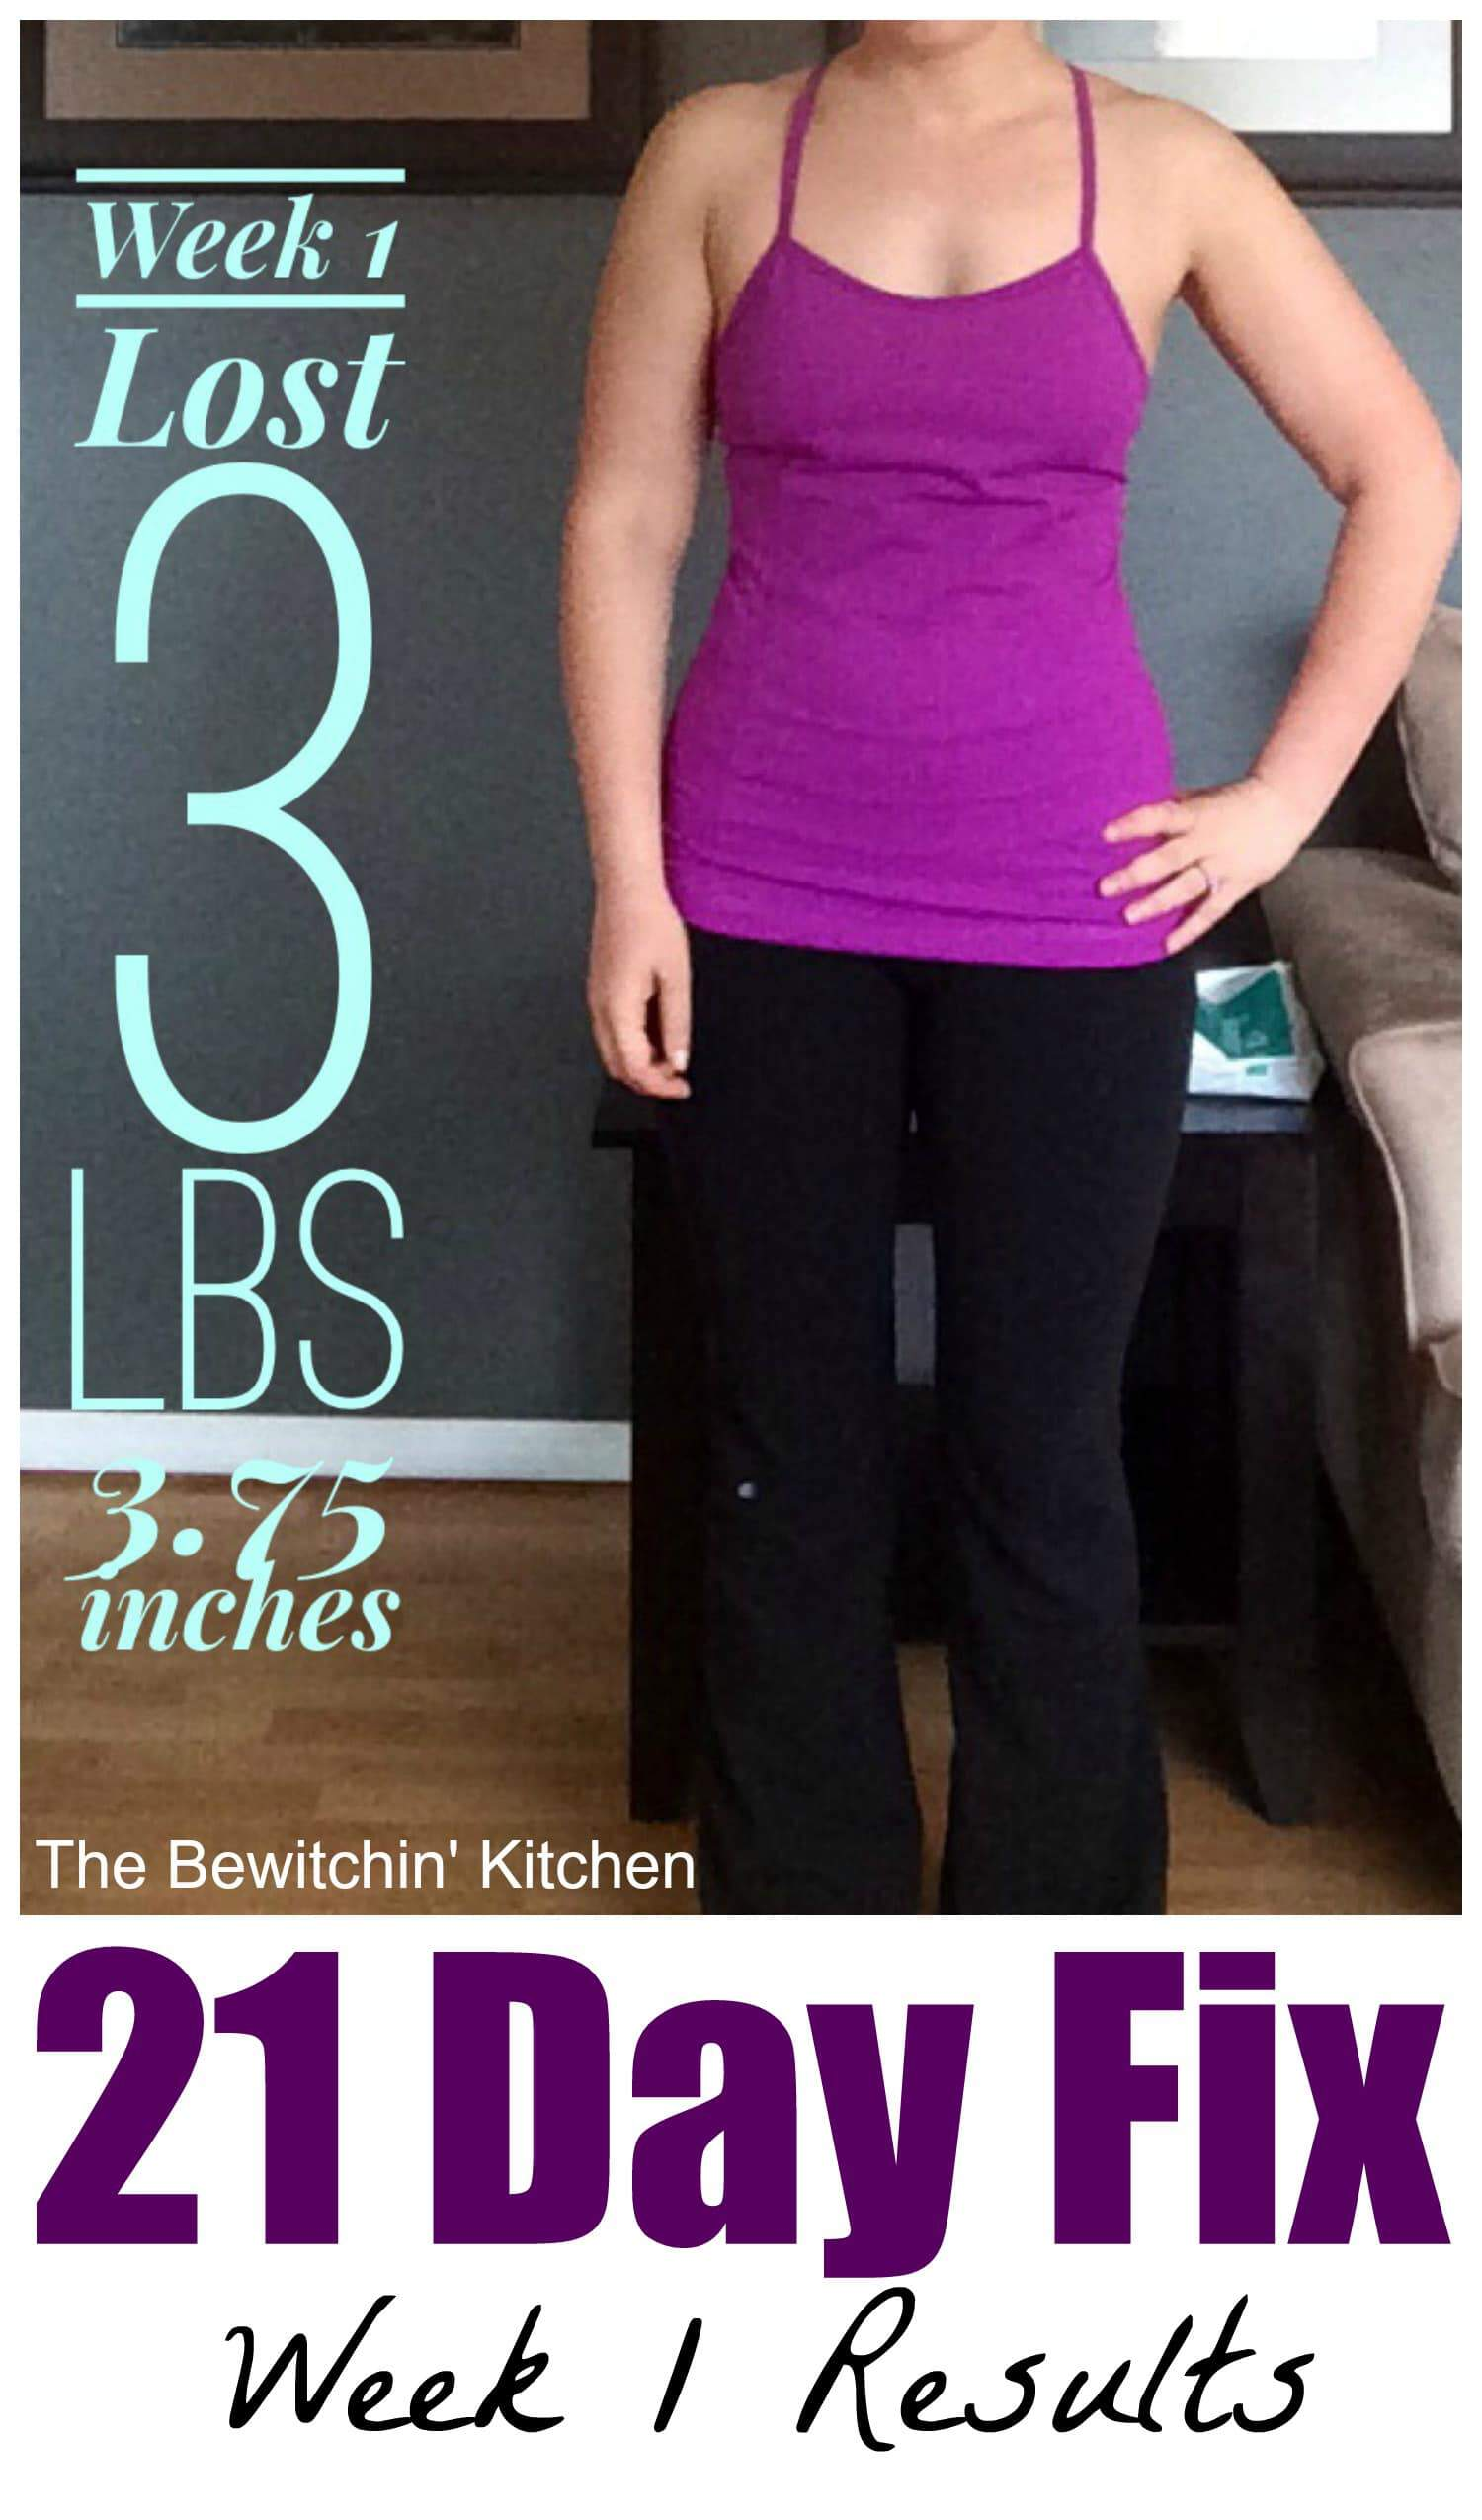 21 Day Fix - Week 1 Results | The Bewitchin' Kitchen